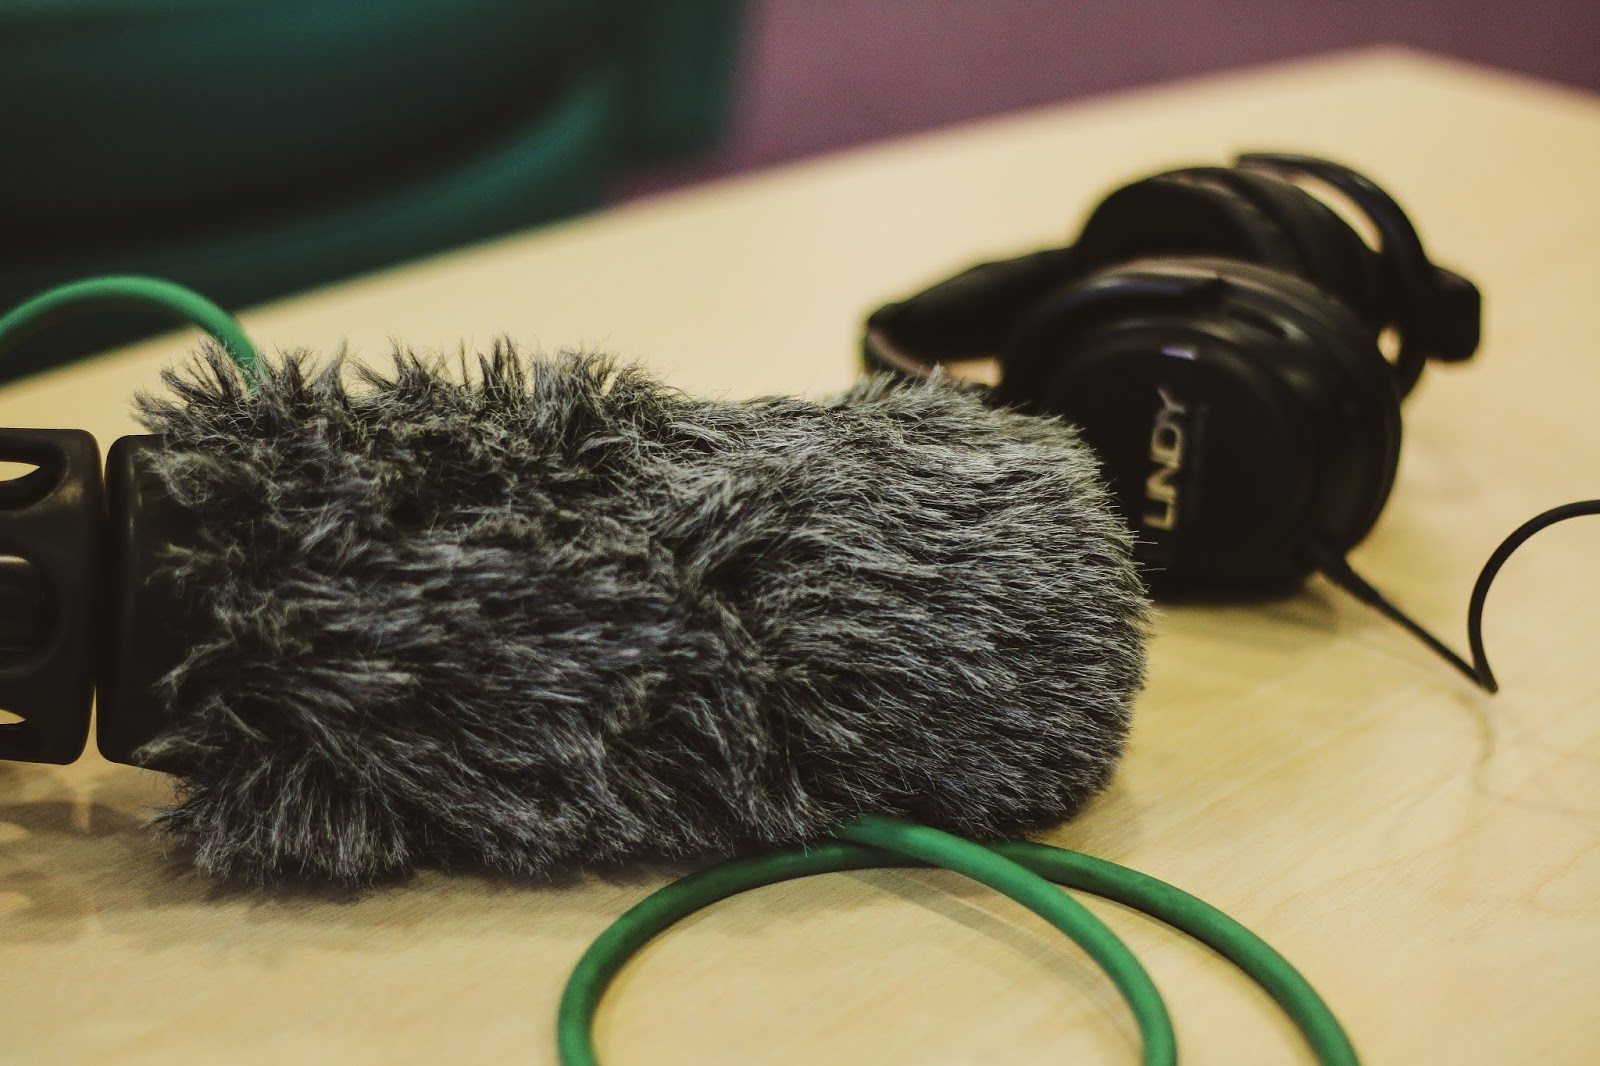 A close up photo of sound equipment on set of a film shoot. The photo shows a shotgun microphone on a pistol grip and headphone next to it.